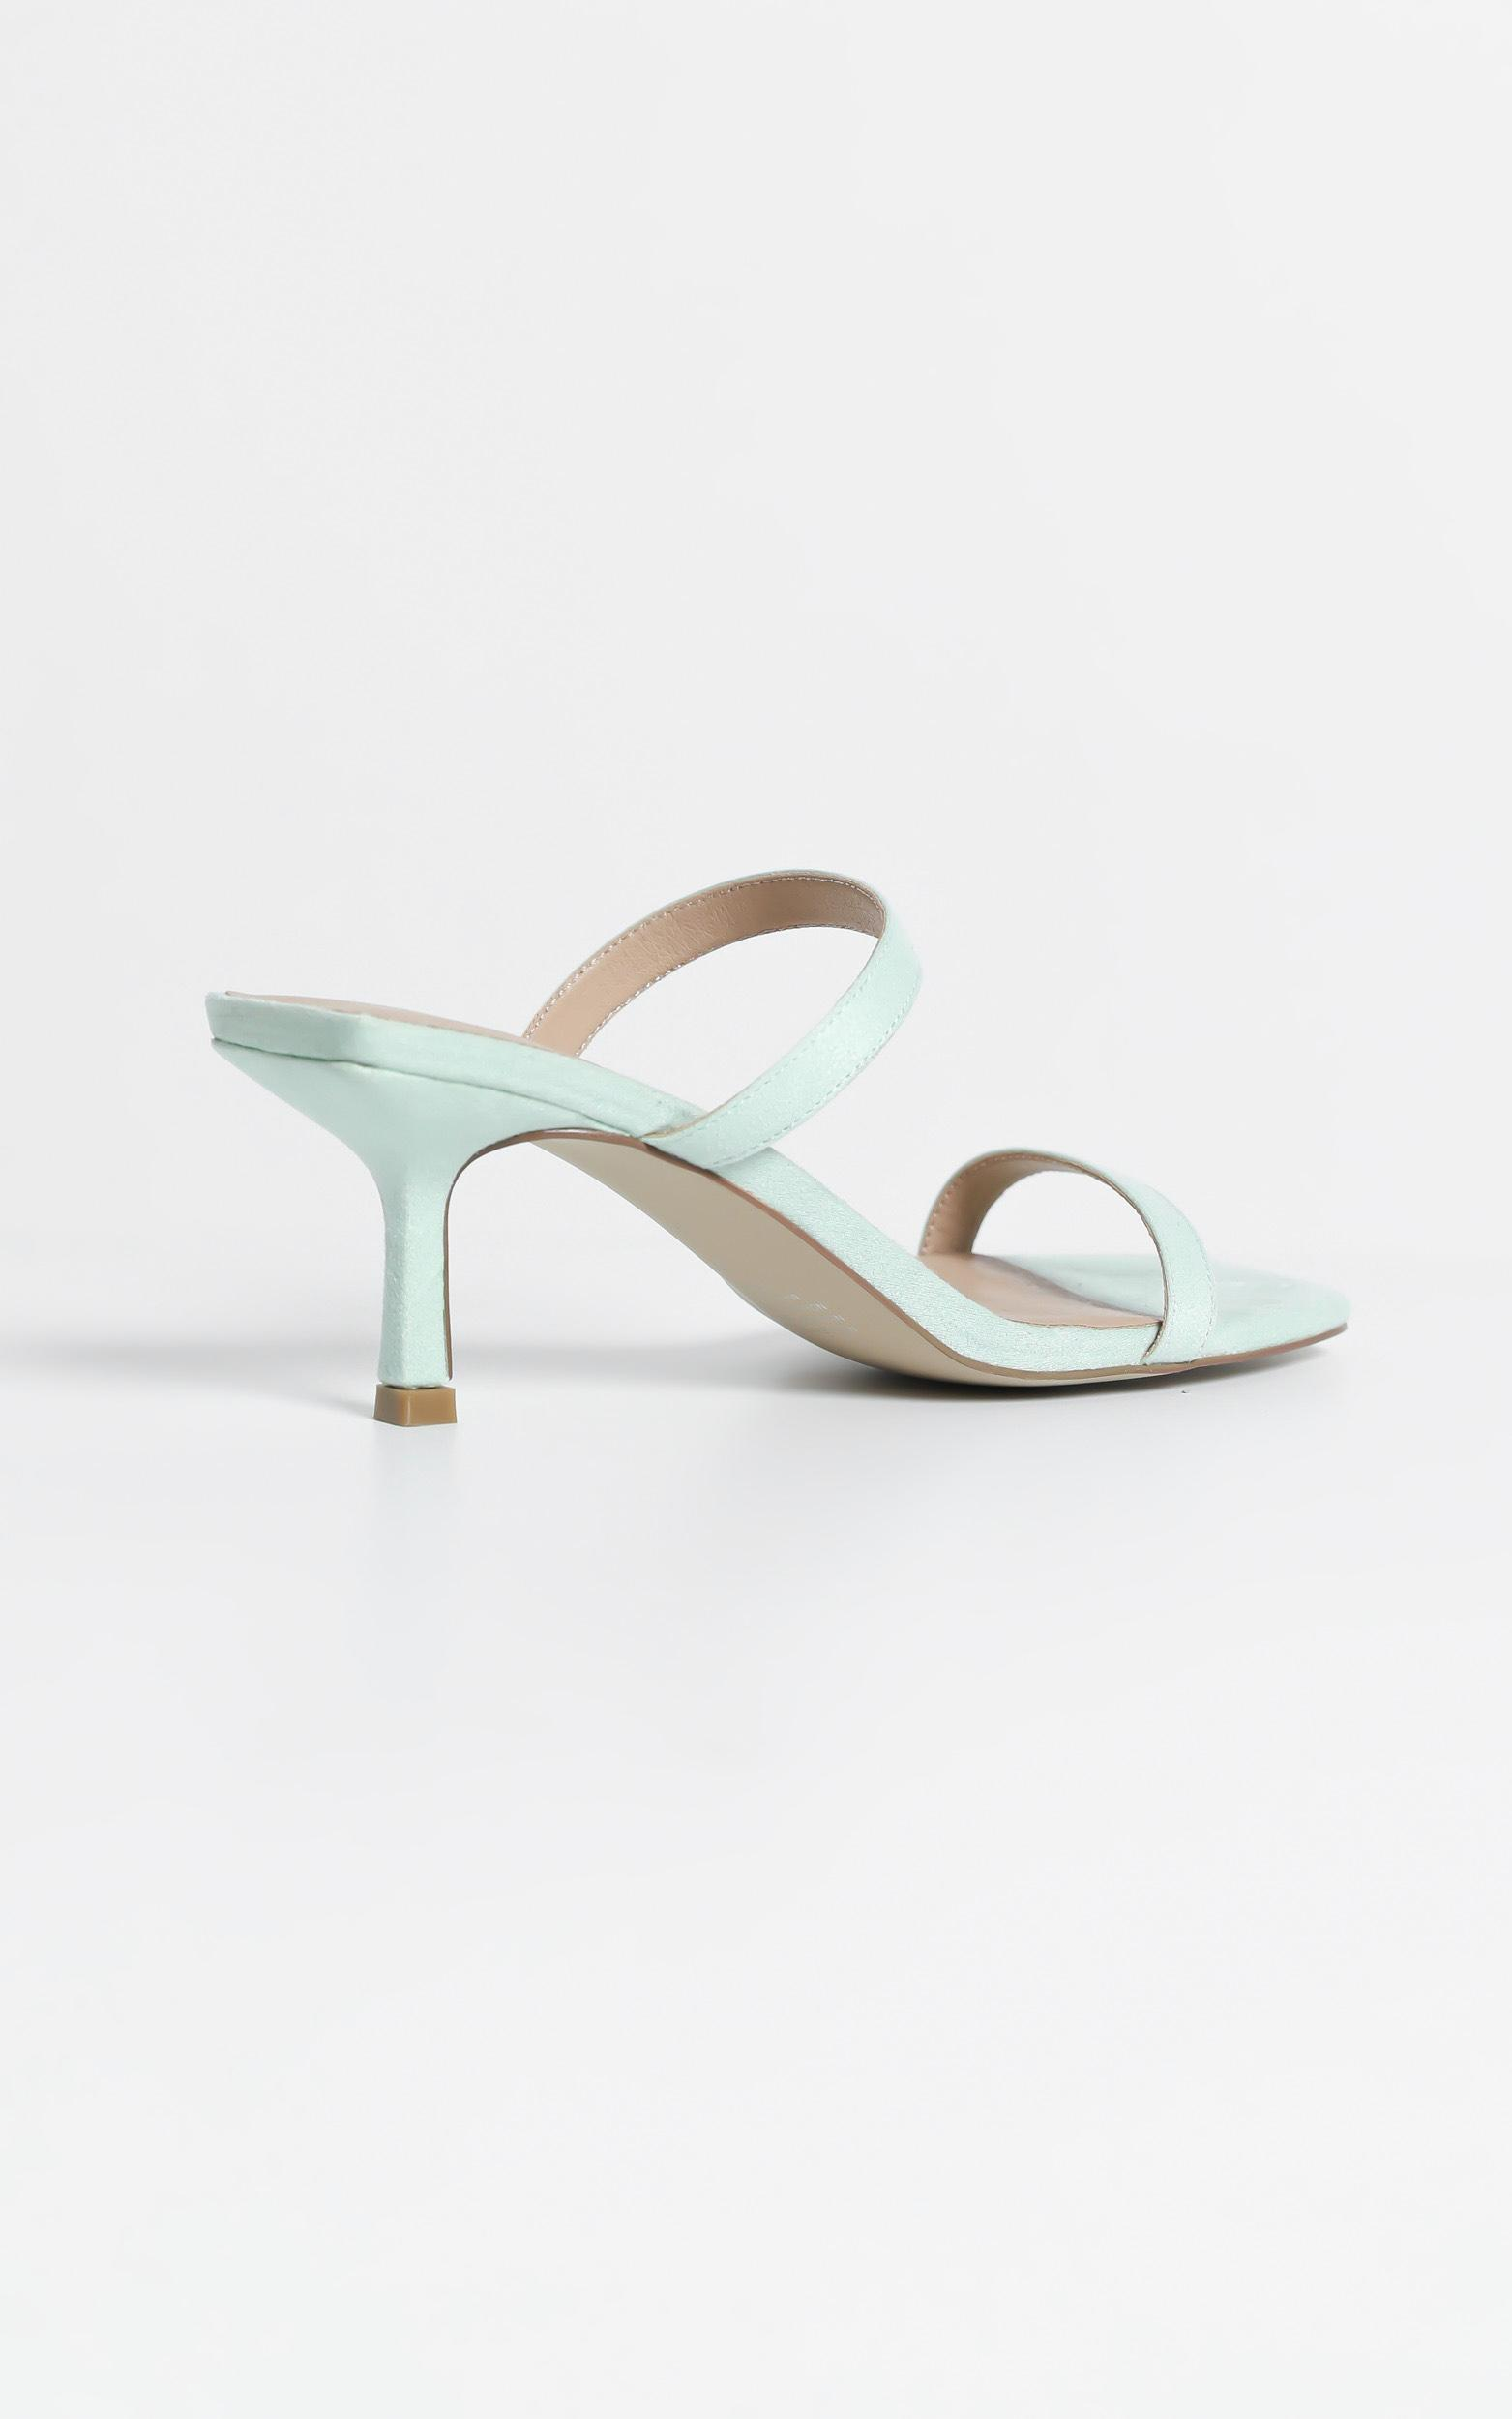 Therapy - Poppin Heels in Mint Suedette  - 5, GRN3, hi-res image number null